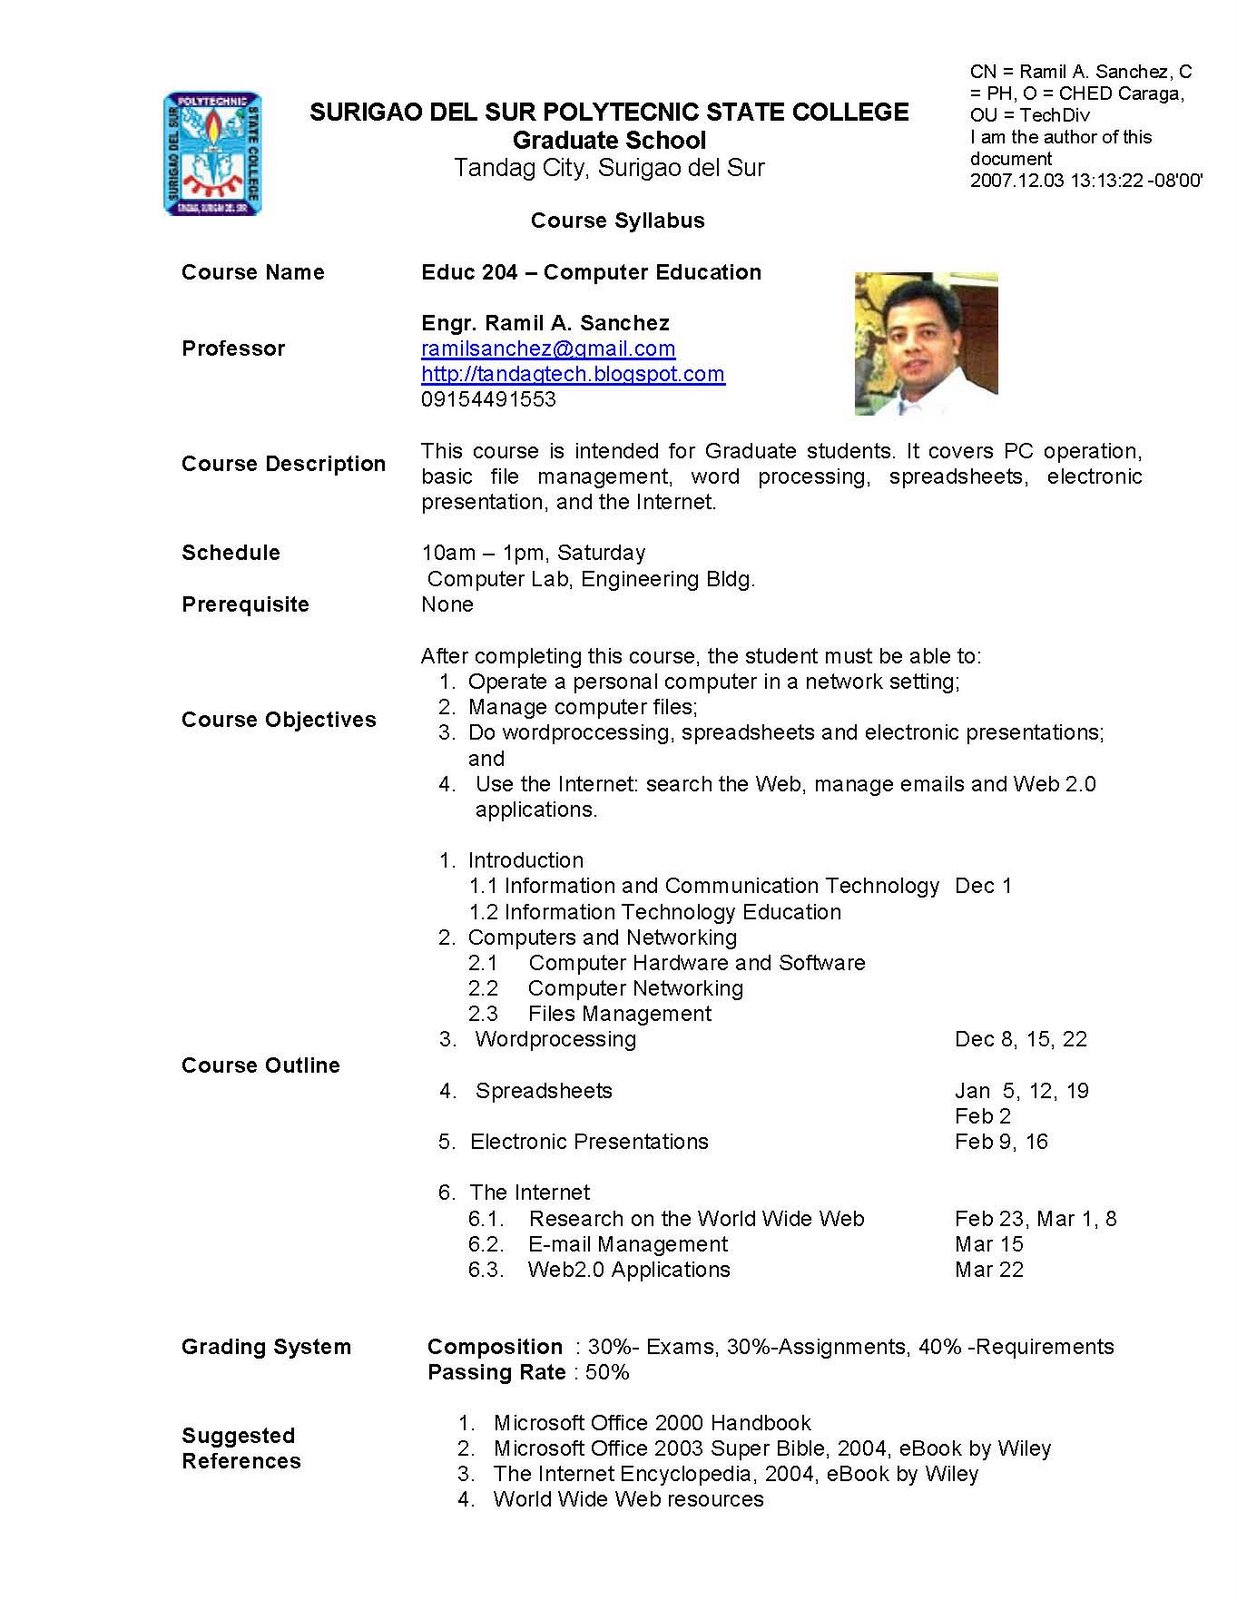 Heading Cover Letter: Resume Cover Letter Heading, Letter Format with ...